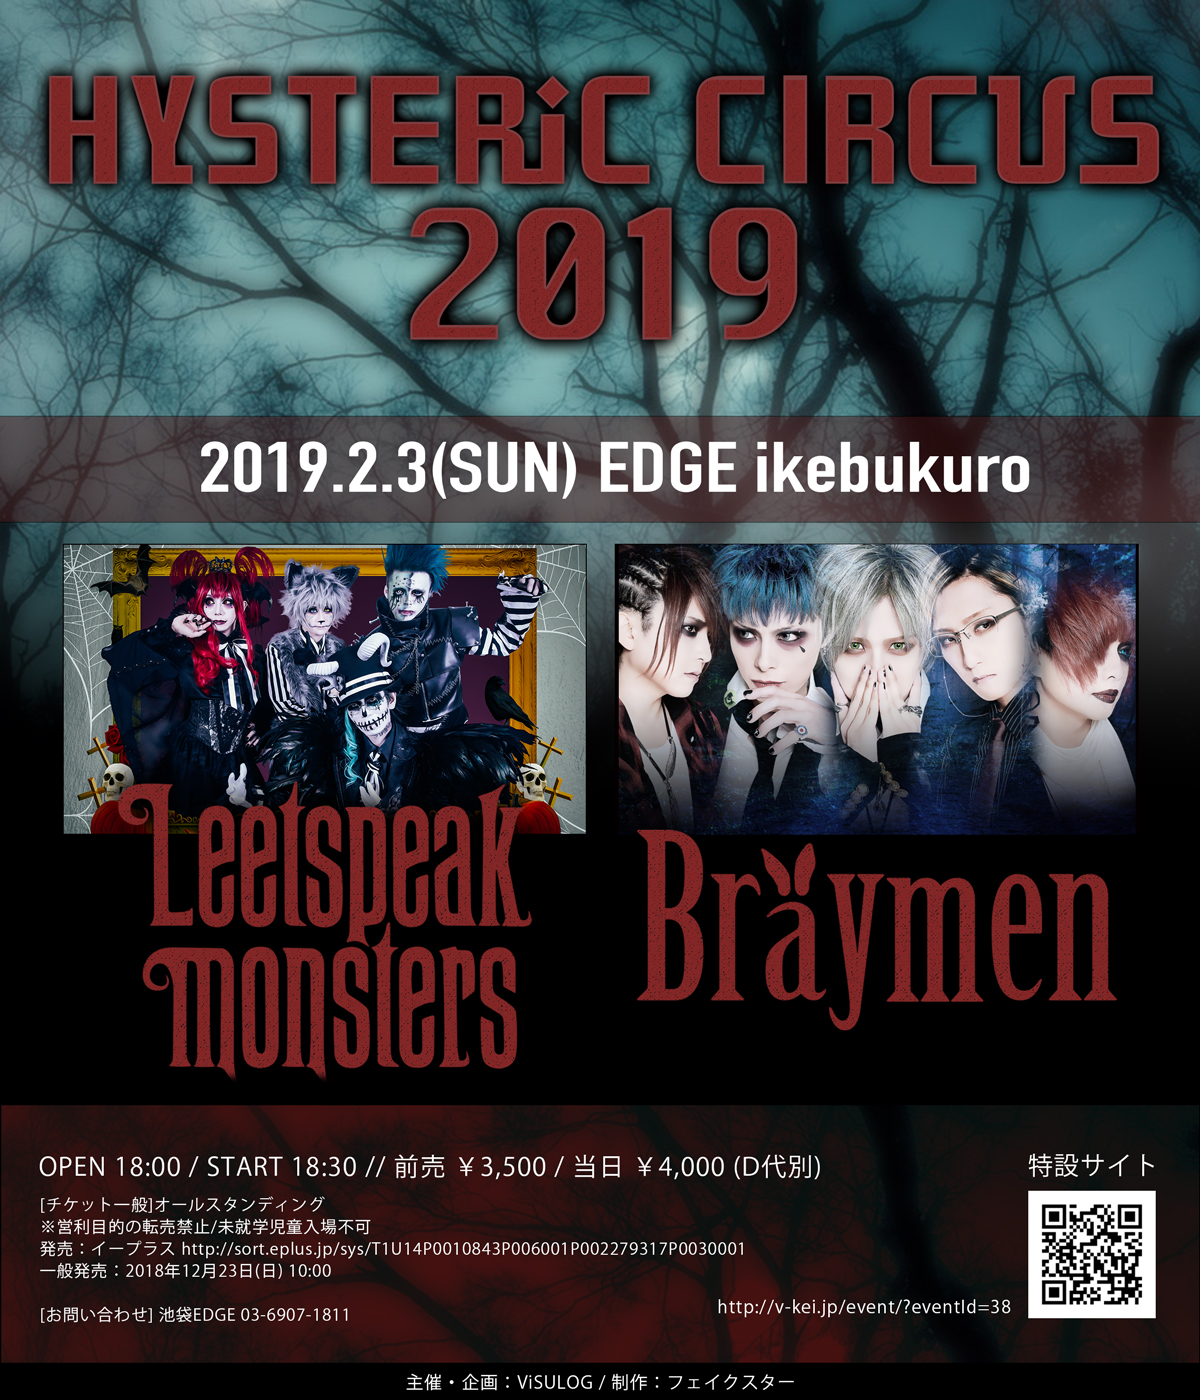 2019.2.3(SUN) EDGE ikebukuro Leetspeak monsters × Bräymen